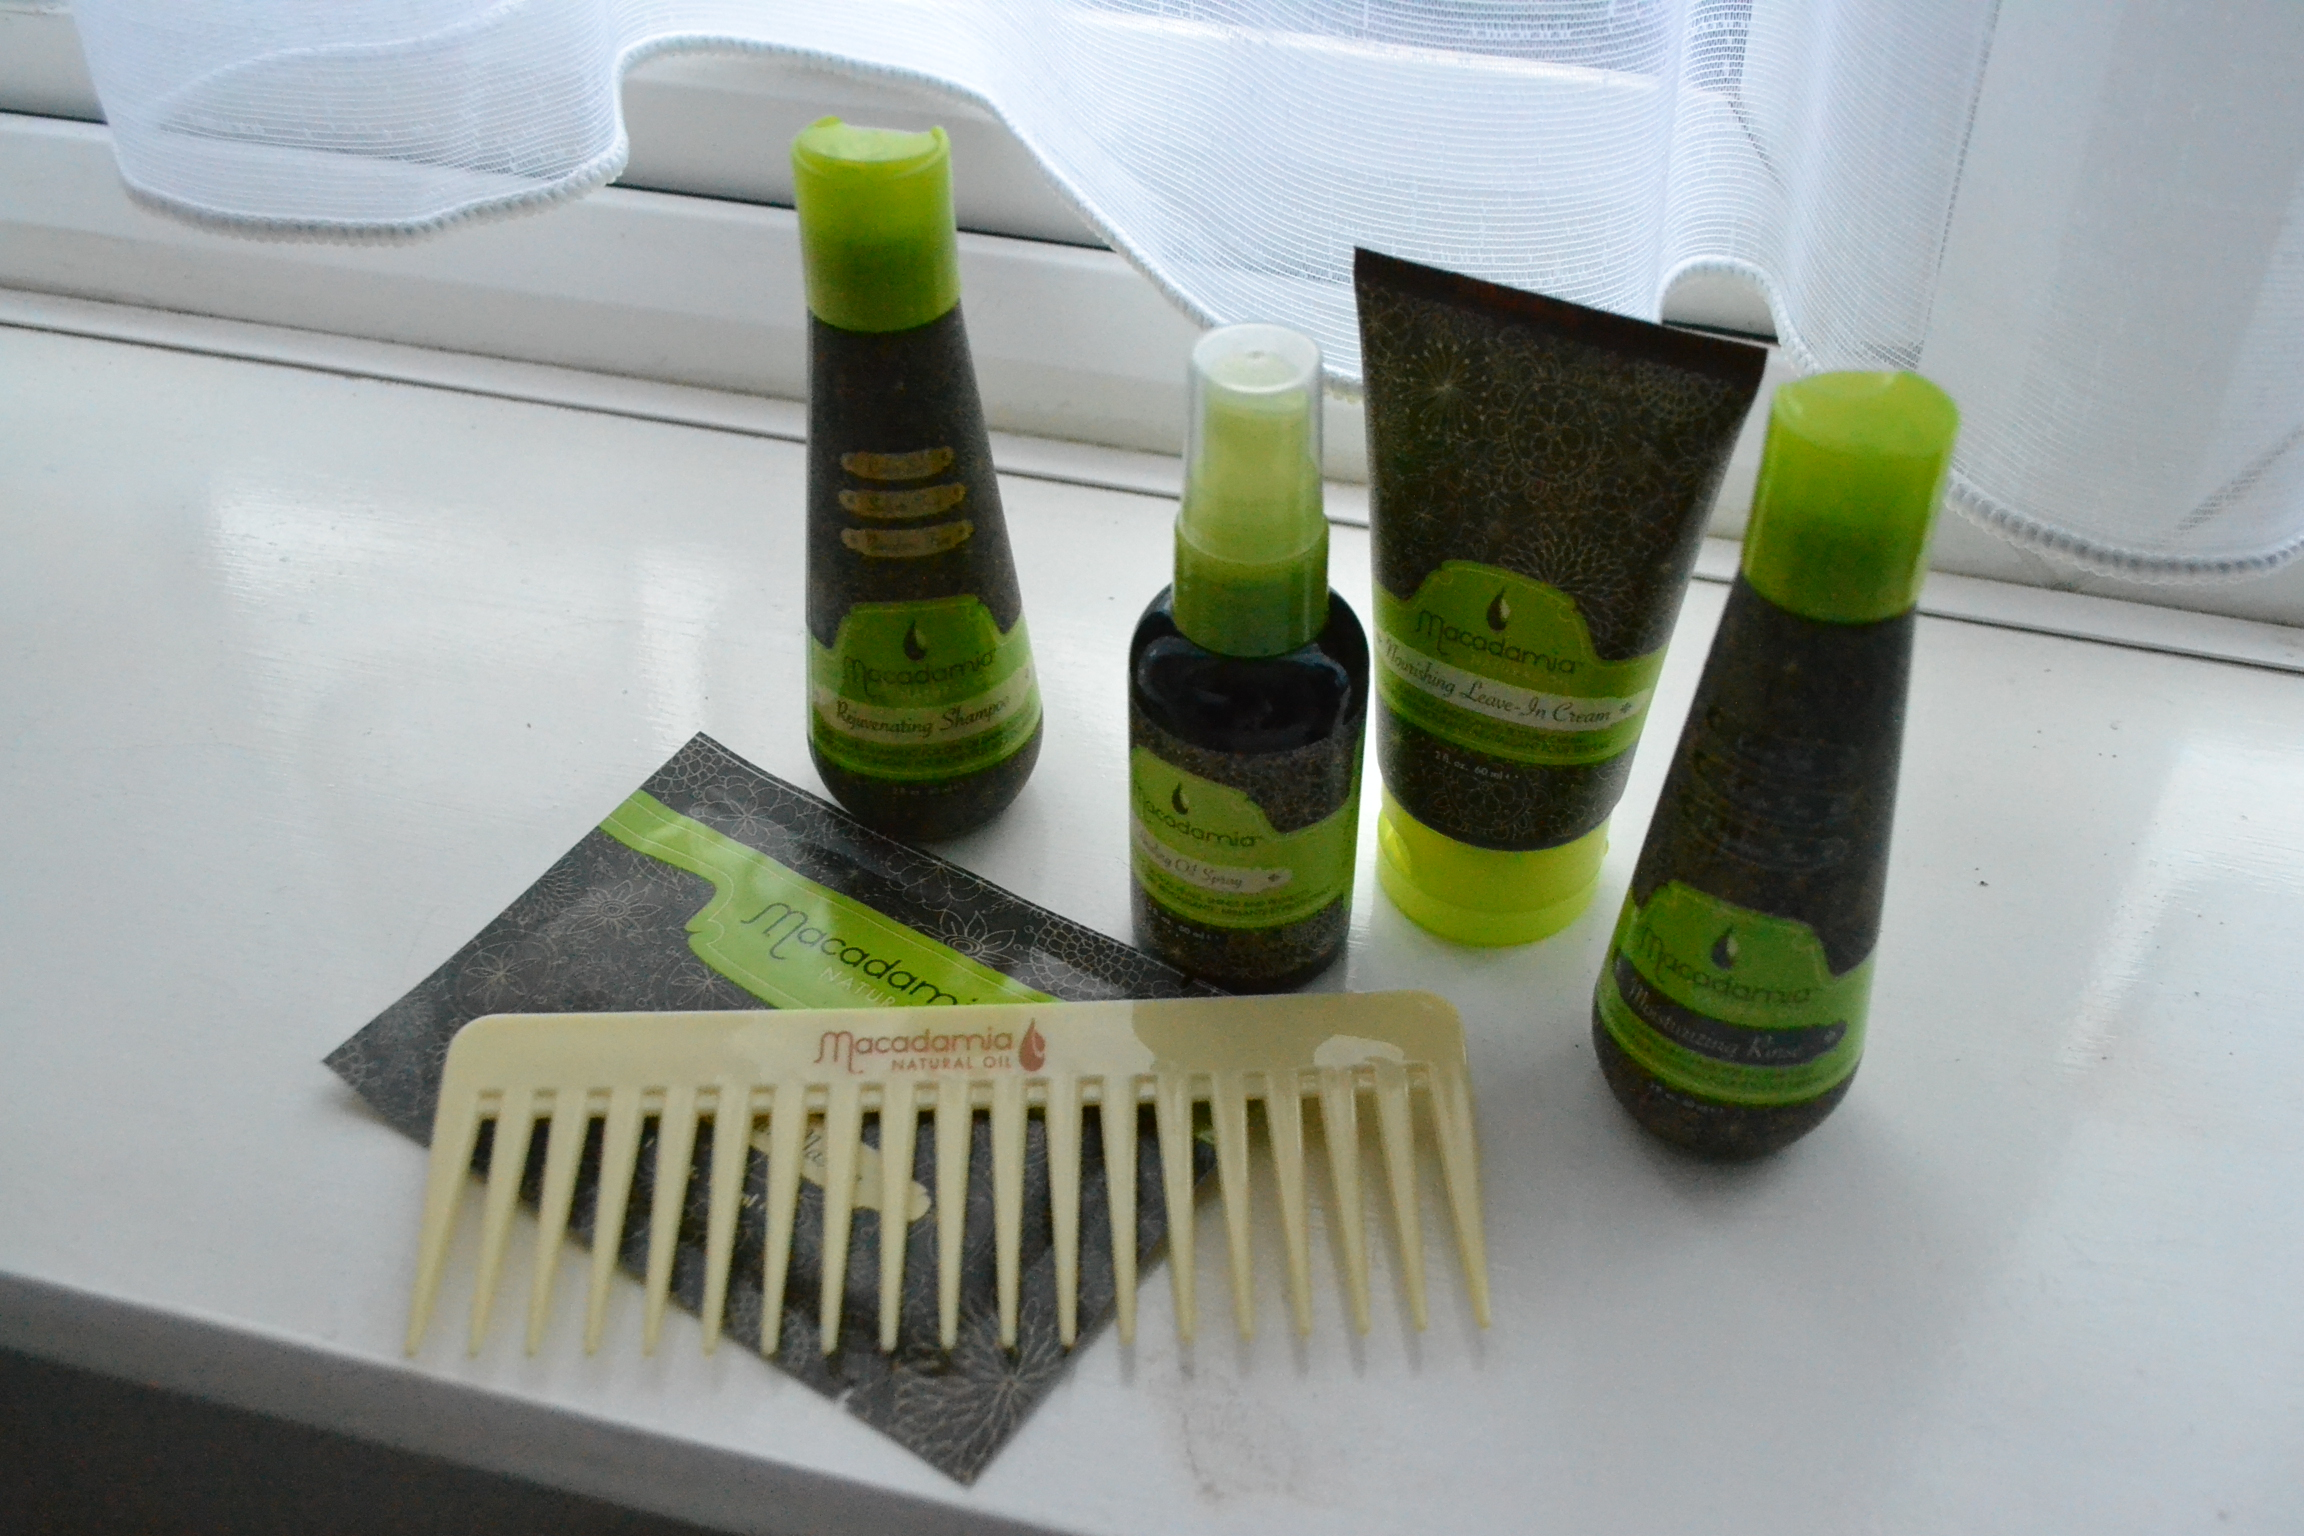 daisybutter - UK Style and Fashion Blog: macadamia haircare travel set, travel essentials